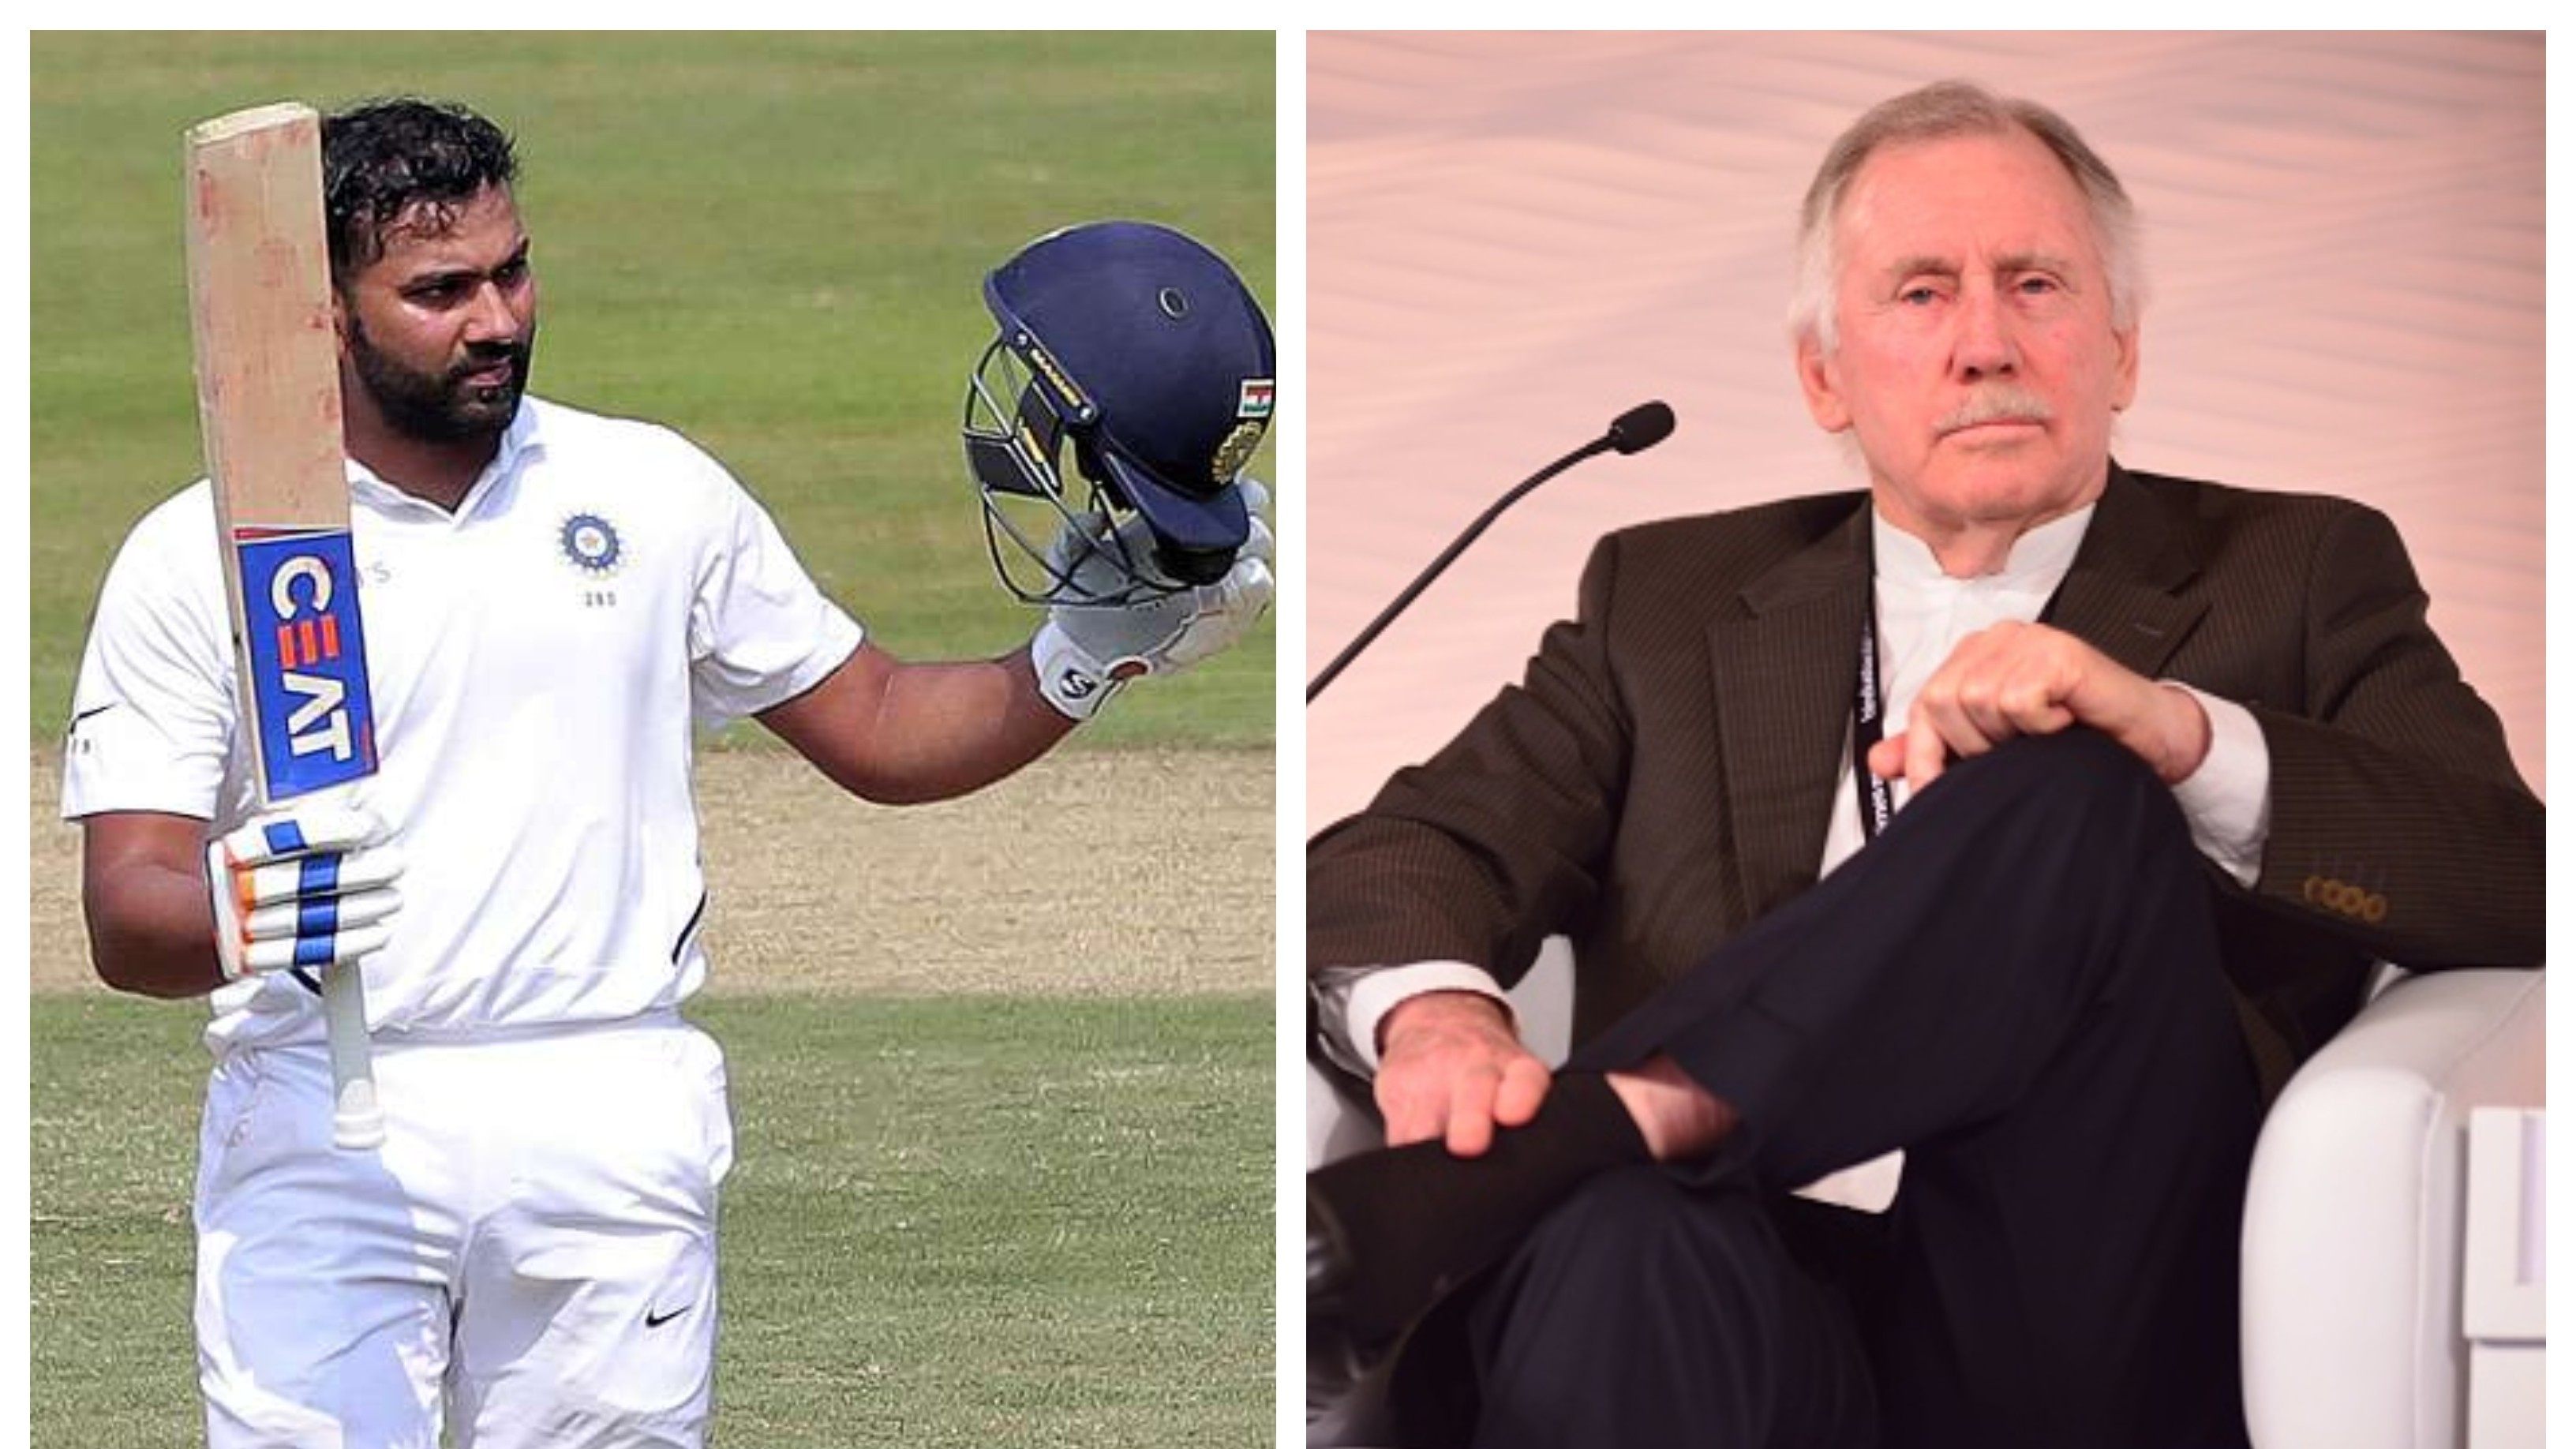 IND v SA 2019: Ian Chappell in support of Rohit Sharma's promotion as Test opener